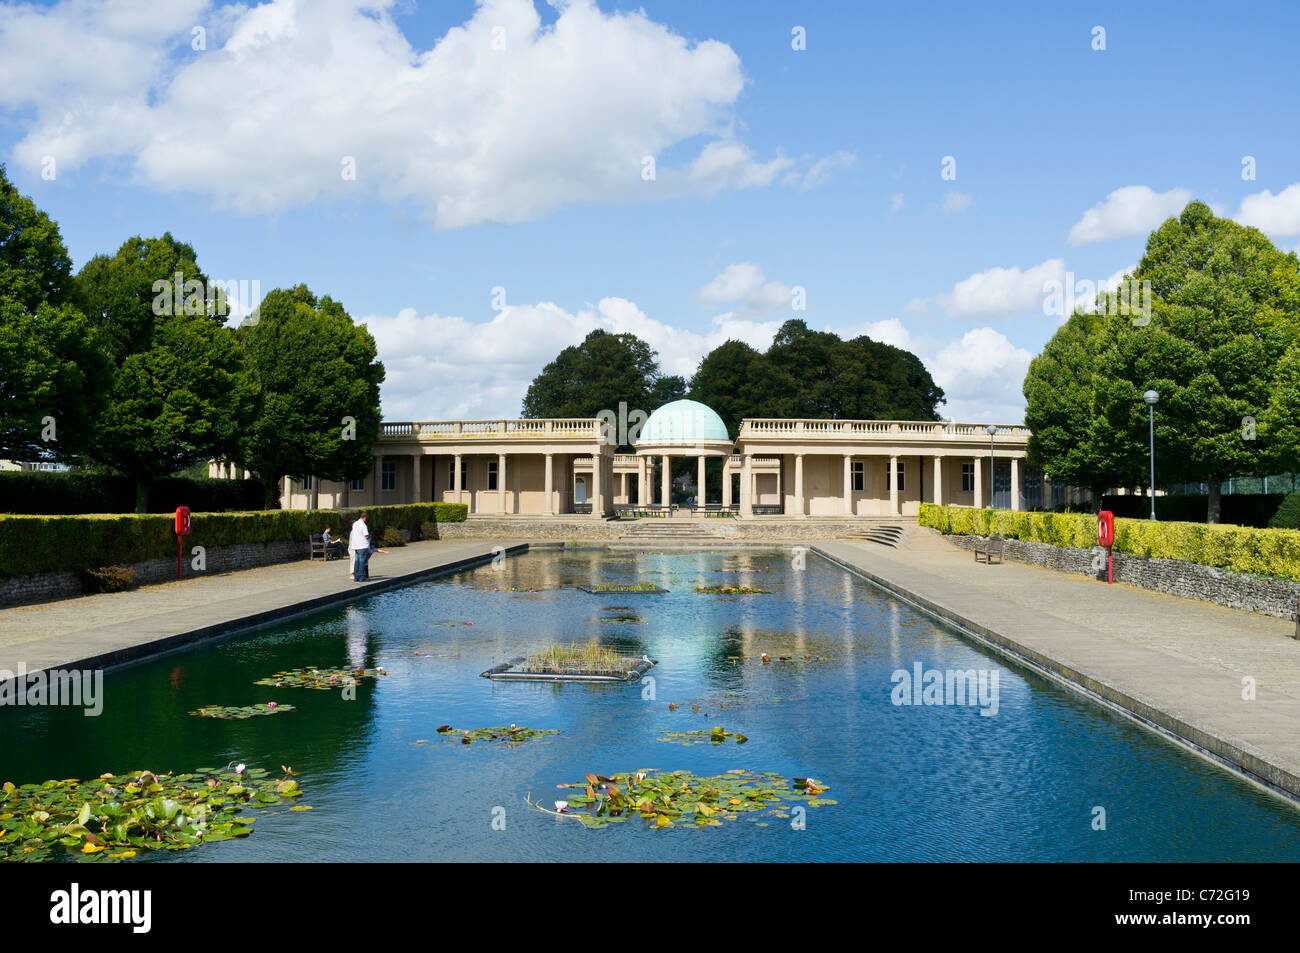 Lily pond Eaton Park Norwich, Norfolk with bandstand. - Stock Image